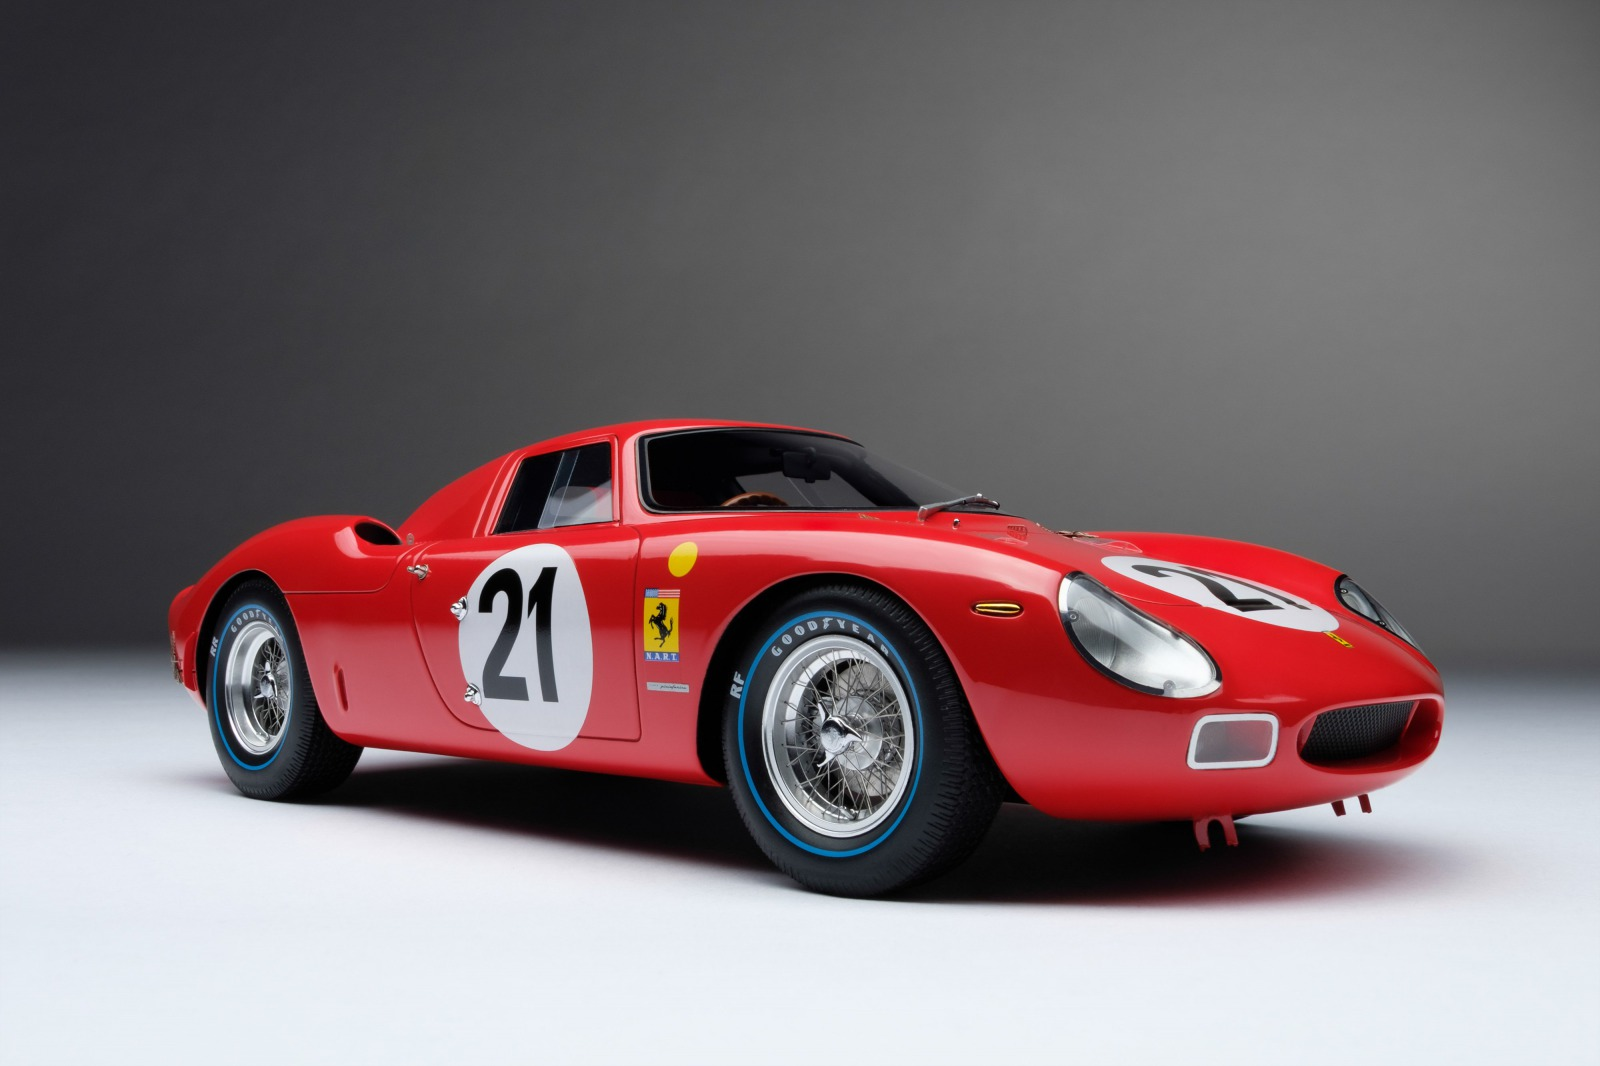 Amalgam Collection アマルガム・コレクション 1:18 1965年ルマン24時間優勝 フェラーリ 250 LM #21Ferrari 250 LM 1/18 Car #21 the overall winner of the 24 hours of Le Mans in 1965 driven by Jochen Rindt and Masten Gregory by Amalgam Collection